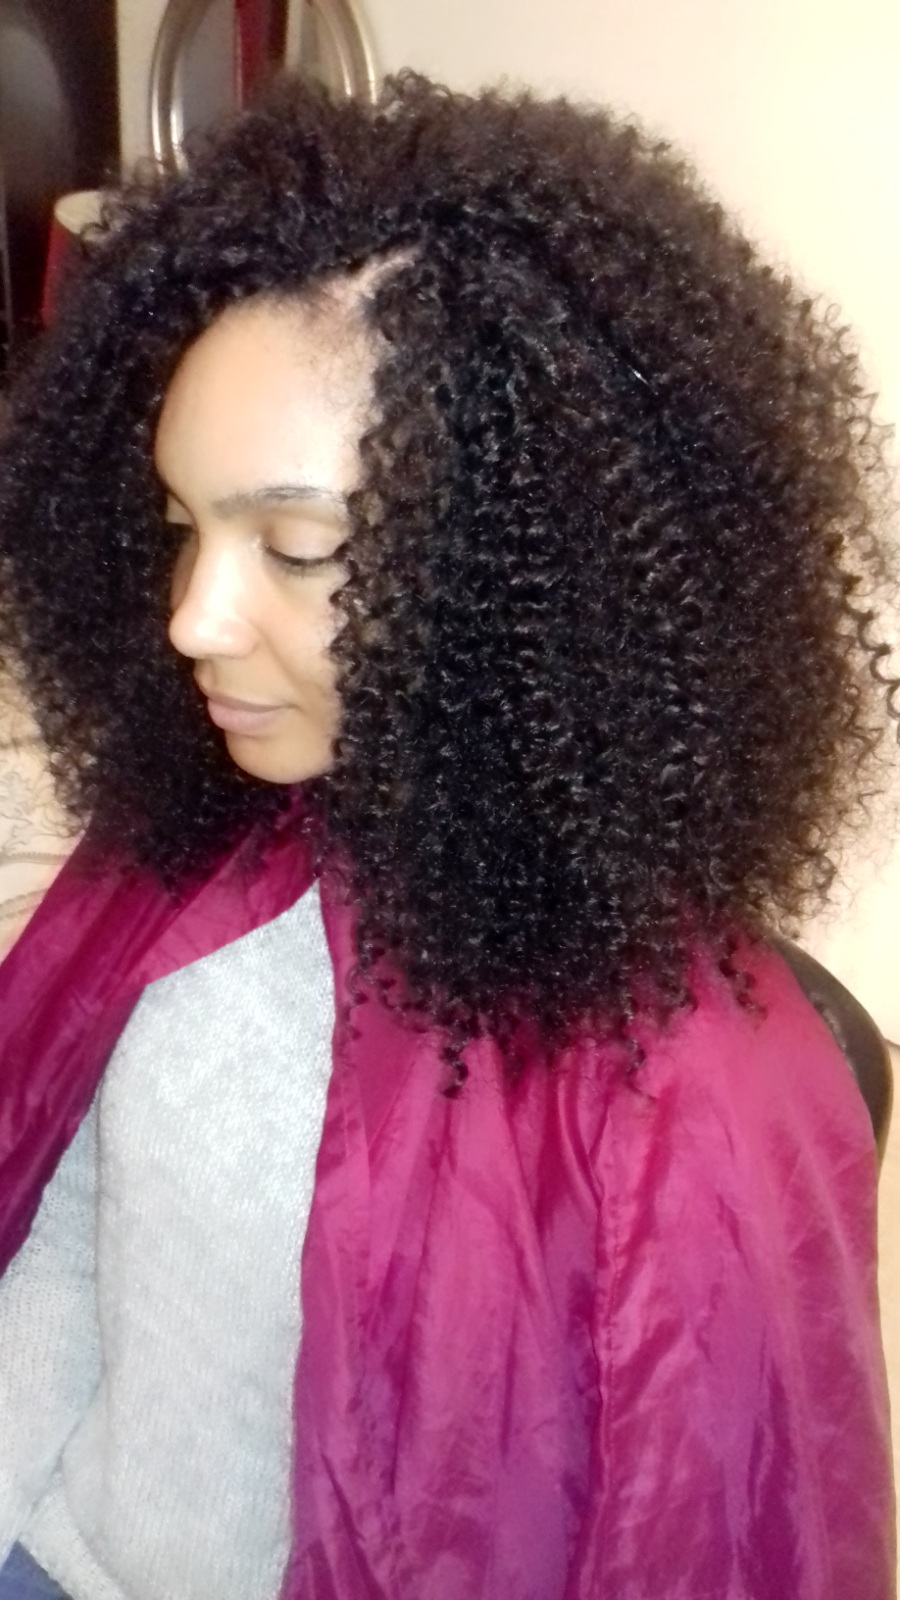 salon de coiffure afro tresse tresses box braids crochet braids vanilles tissages paris 75 77 78 91 92 93 94 95 CEYLWYKP